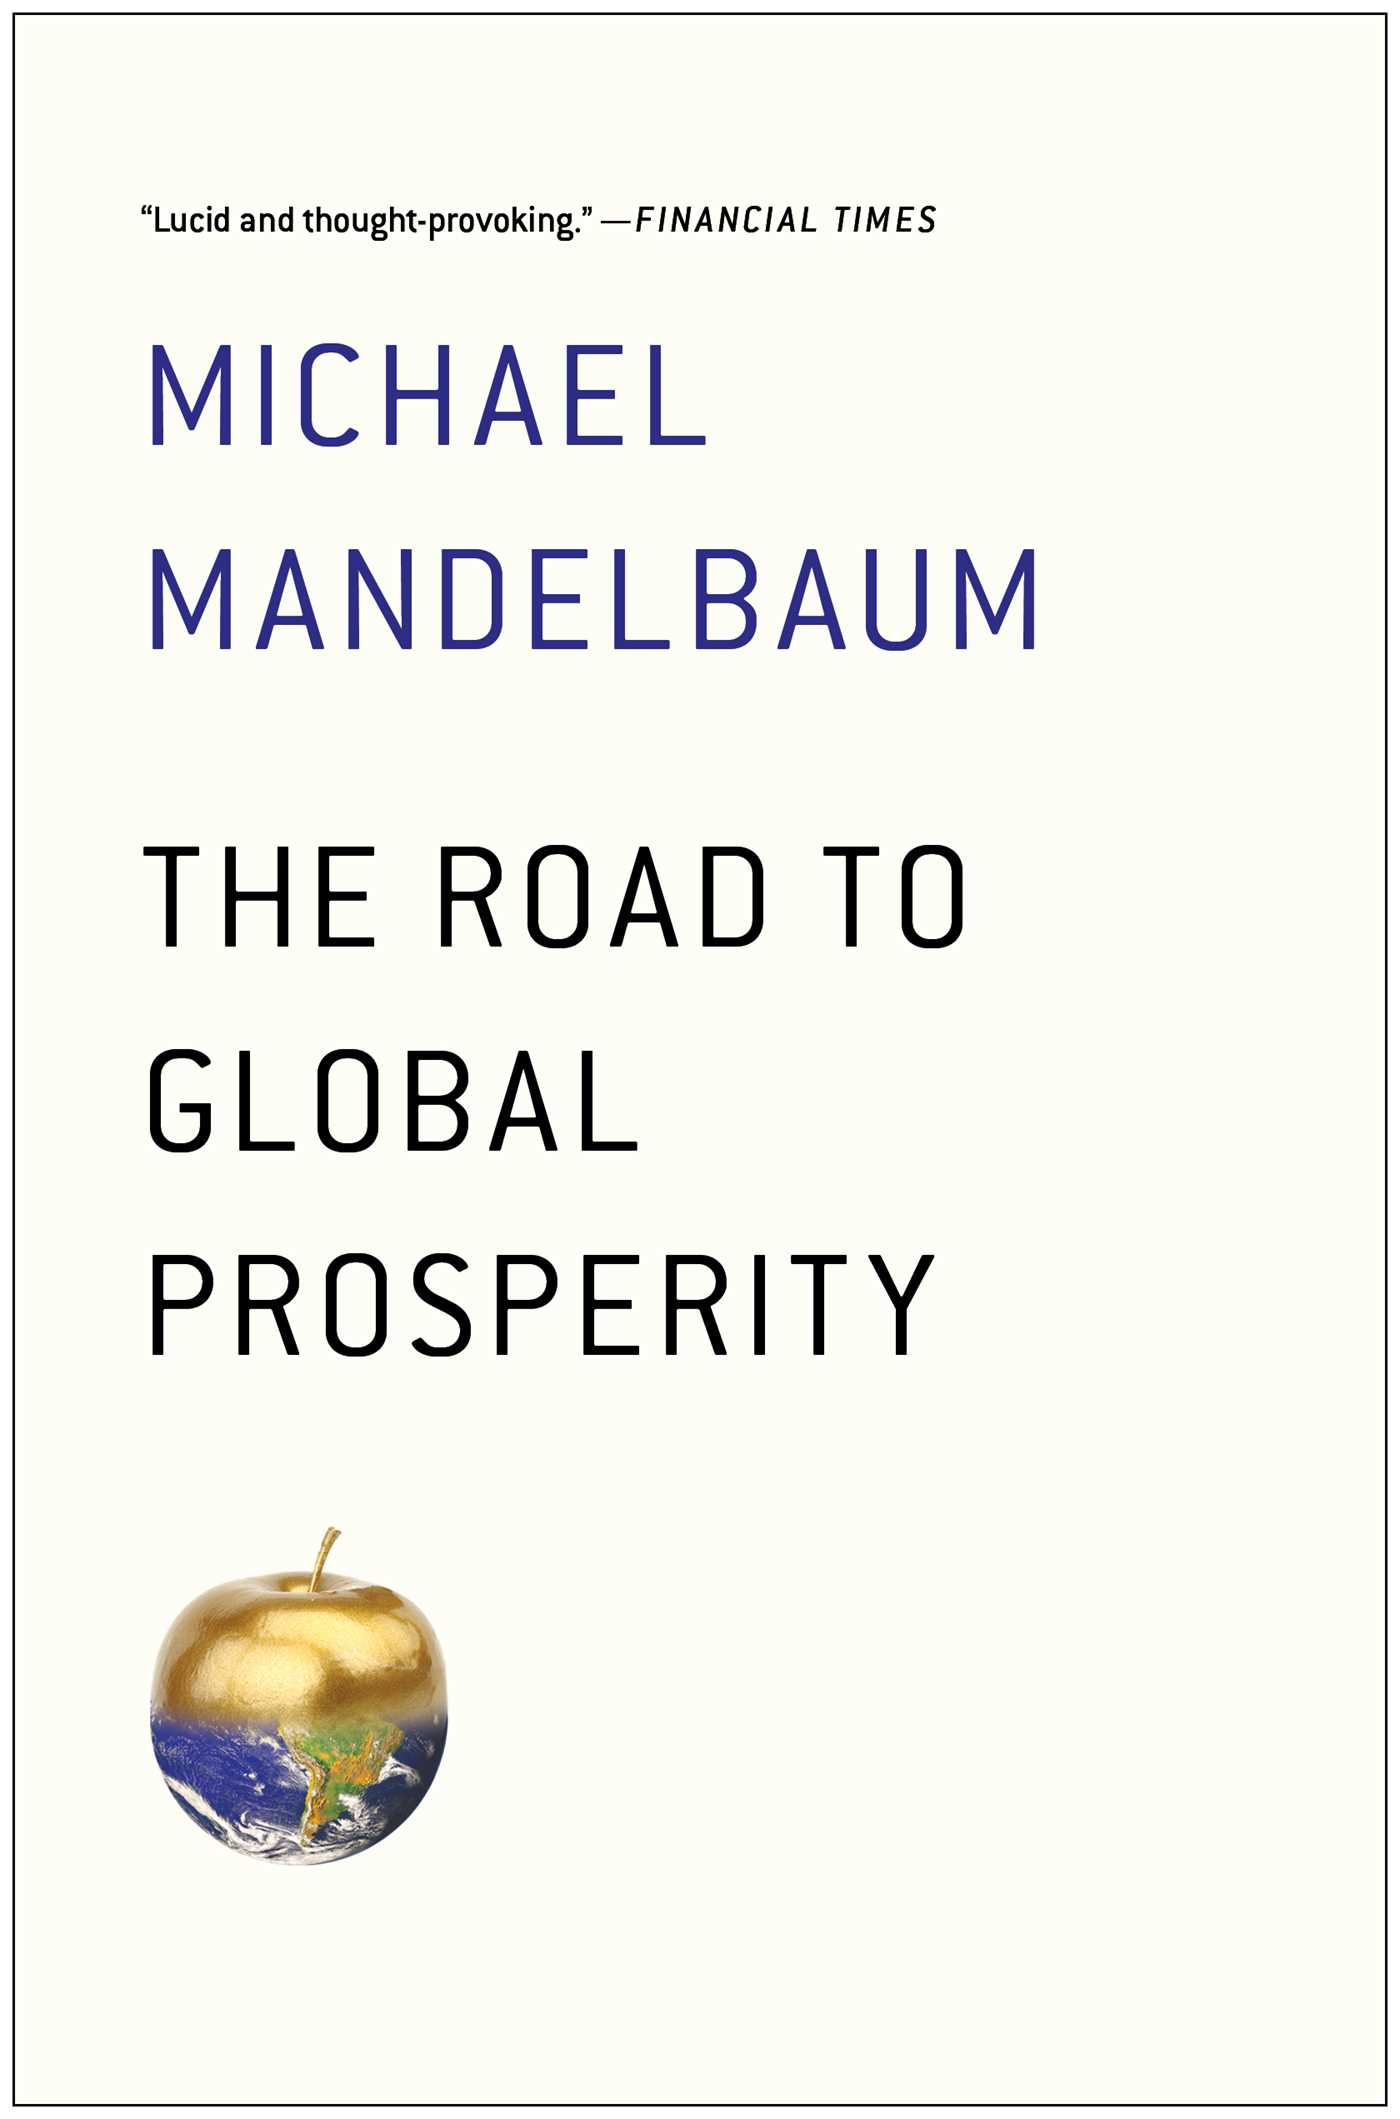 Download Ebook The Road to Global Prosperity by Michael Mandelbaum Pdf